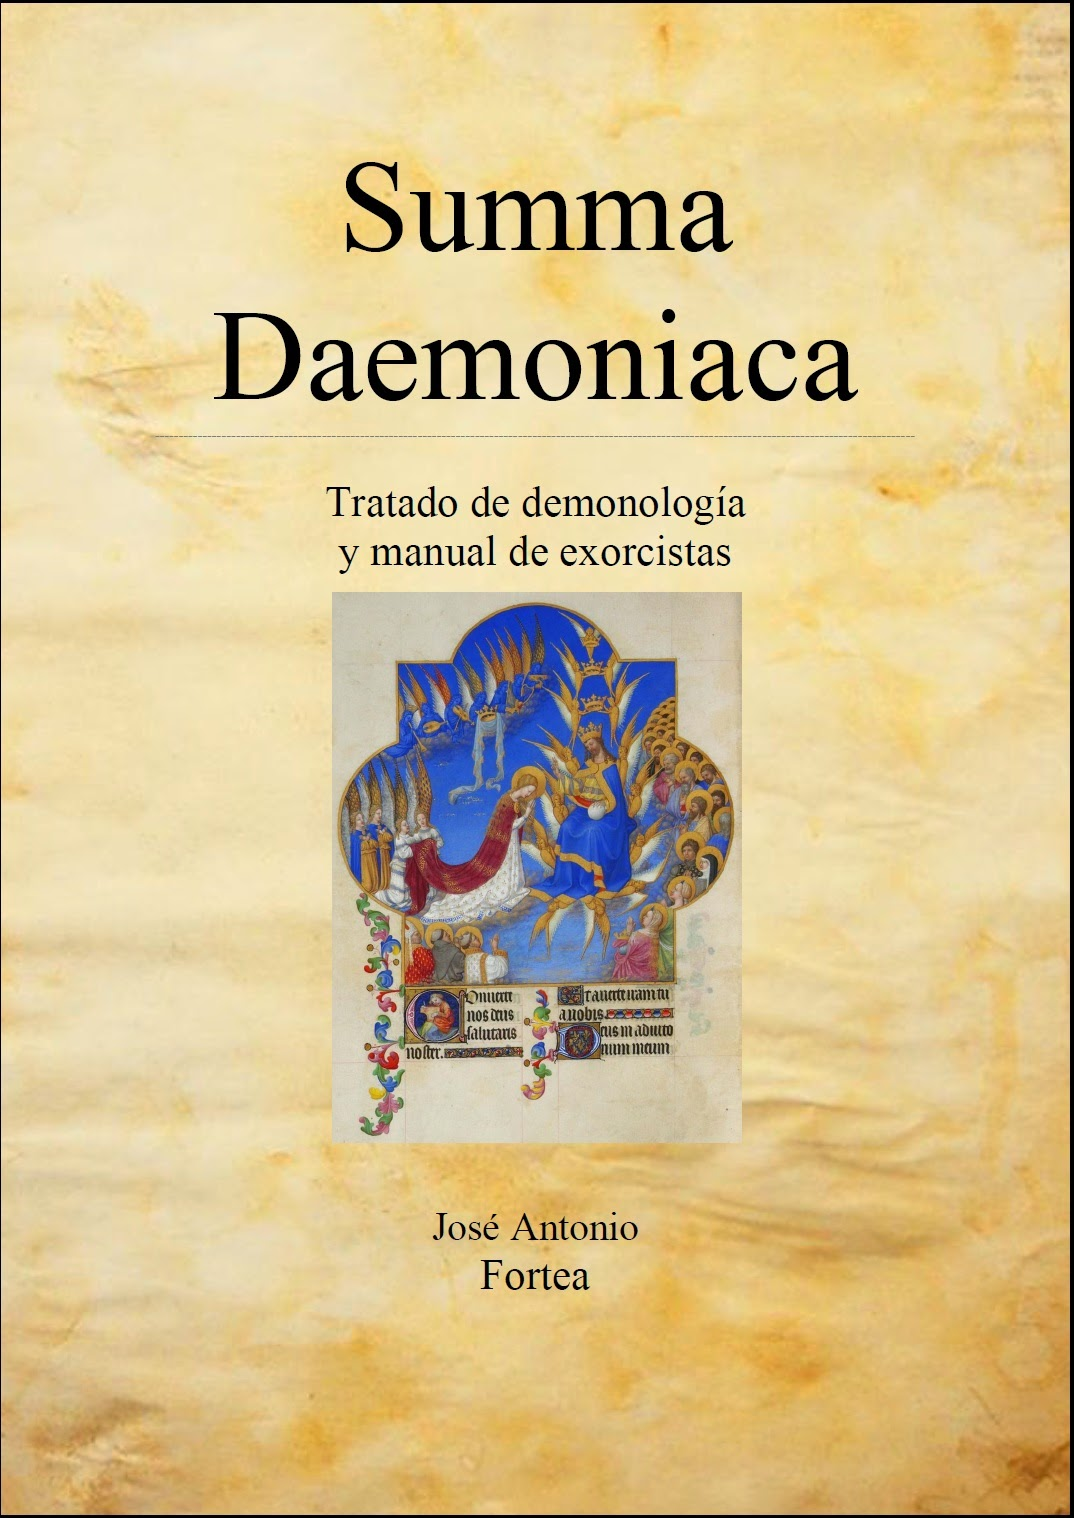 LIBRO PDF: el demonio y manual de exorcistas